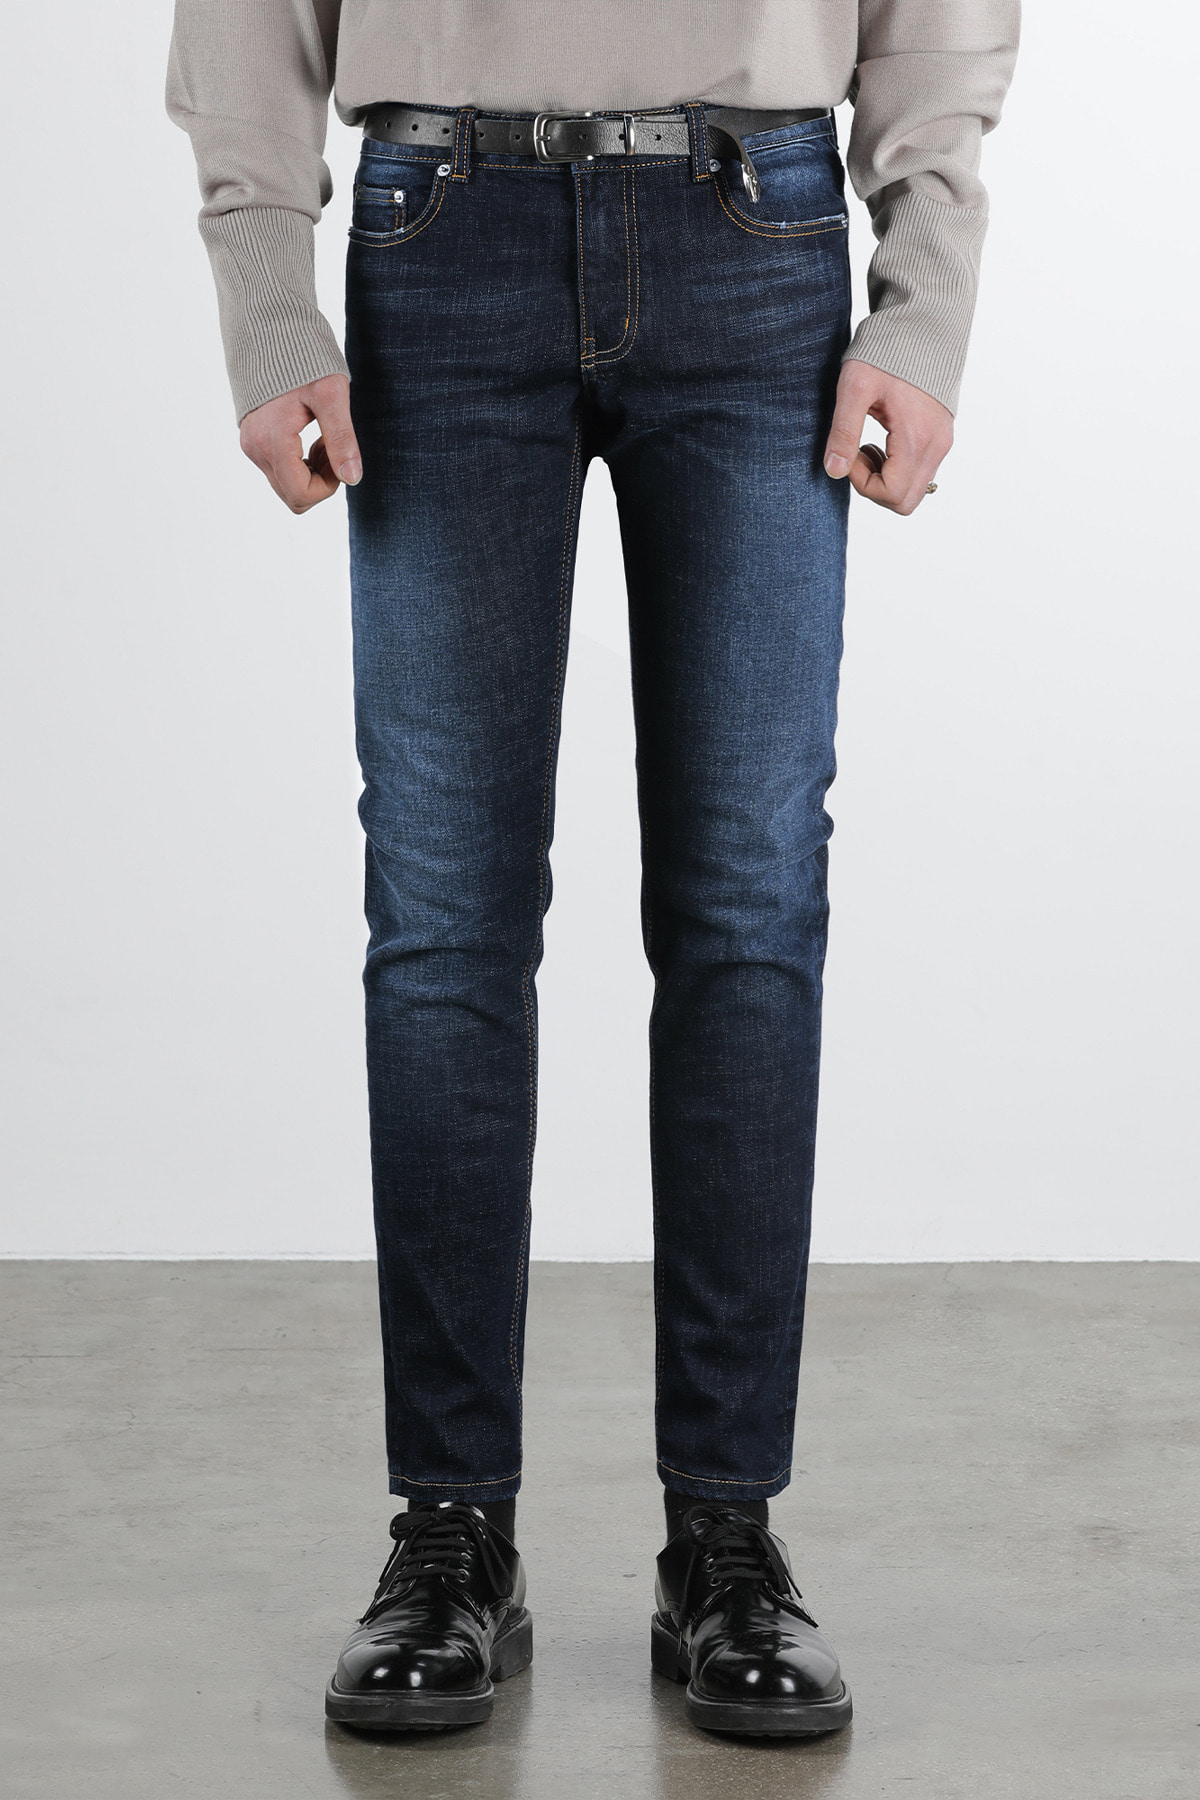 페이탈리즘 #0083B Dude blue washed crop jeans (un cutting)